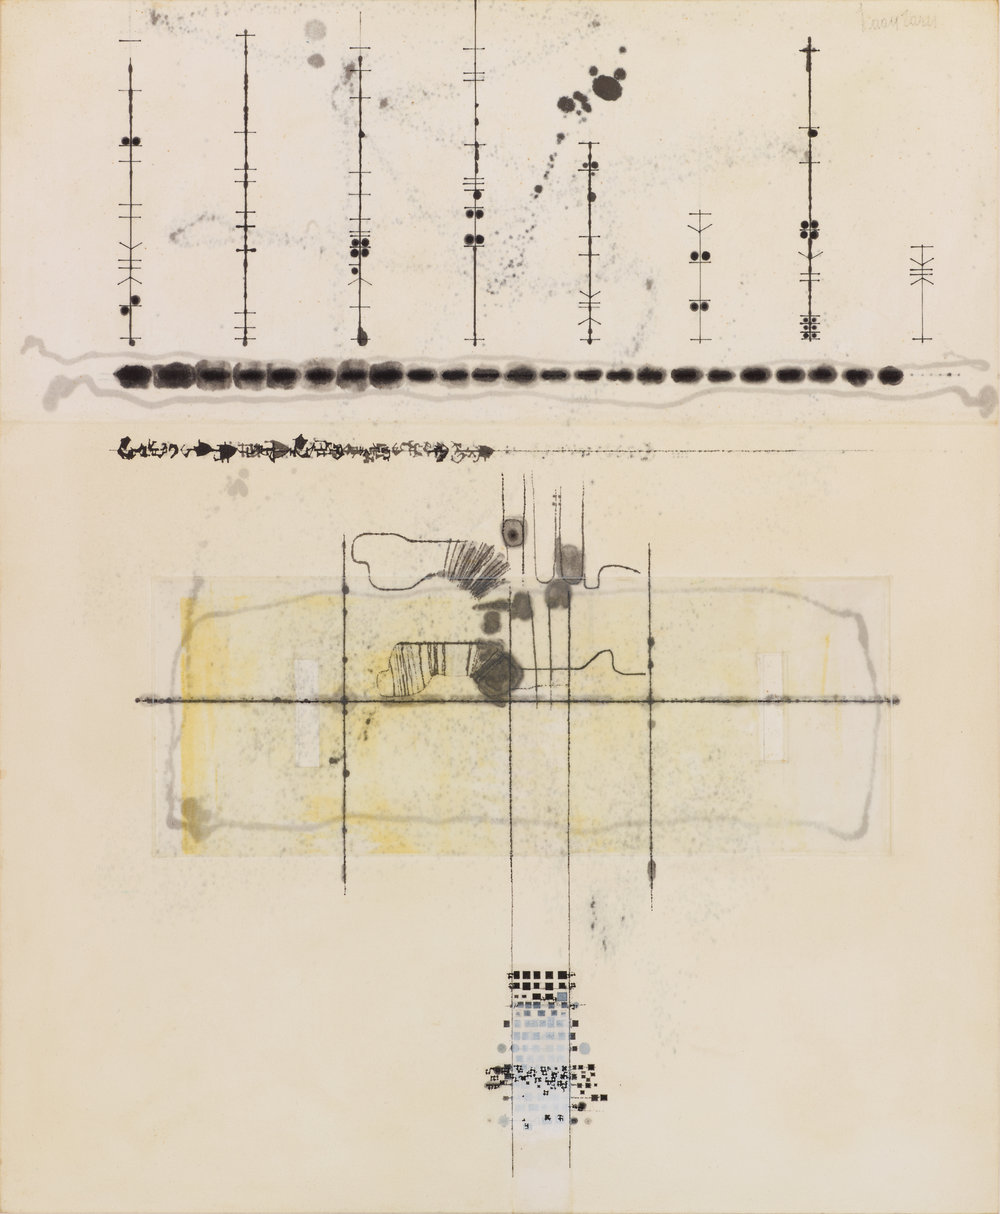 Portrait with thoughts above  (plan), 1980s  Ink on blotting paper  54 cm x 44 cm